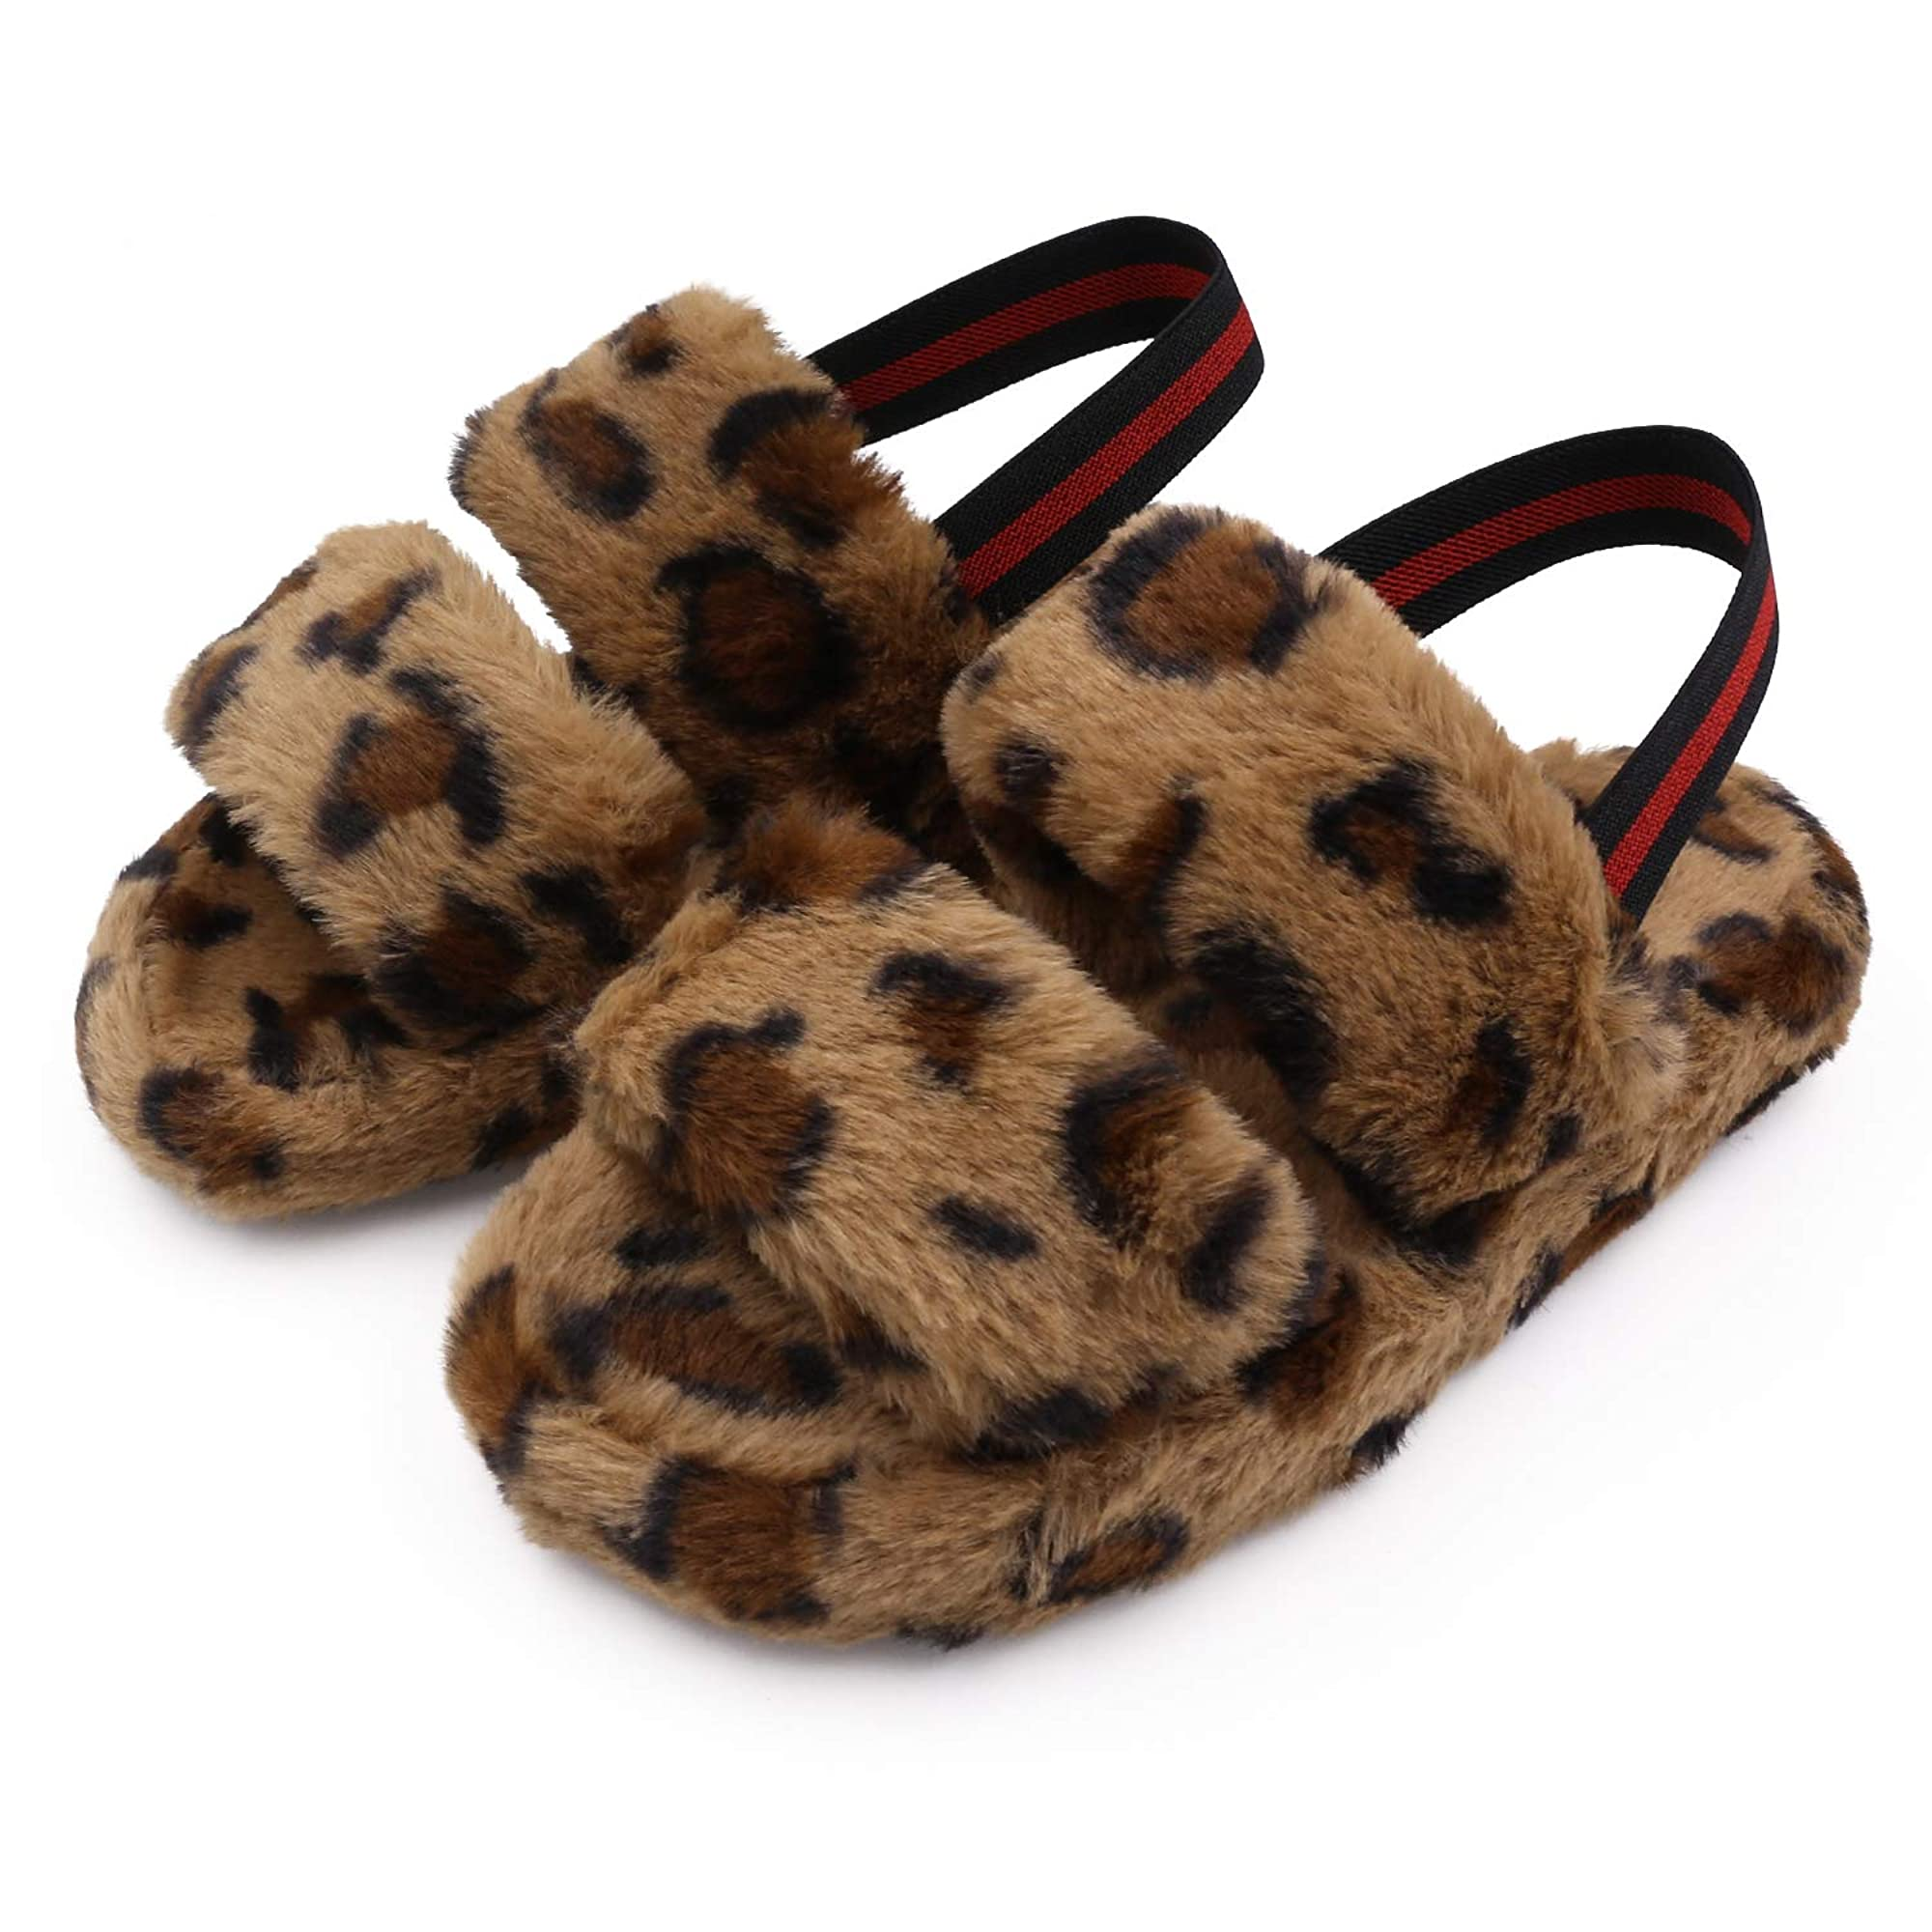 Fluffy Sandals And Slippers With Elastic Strap